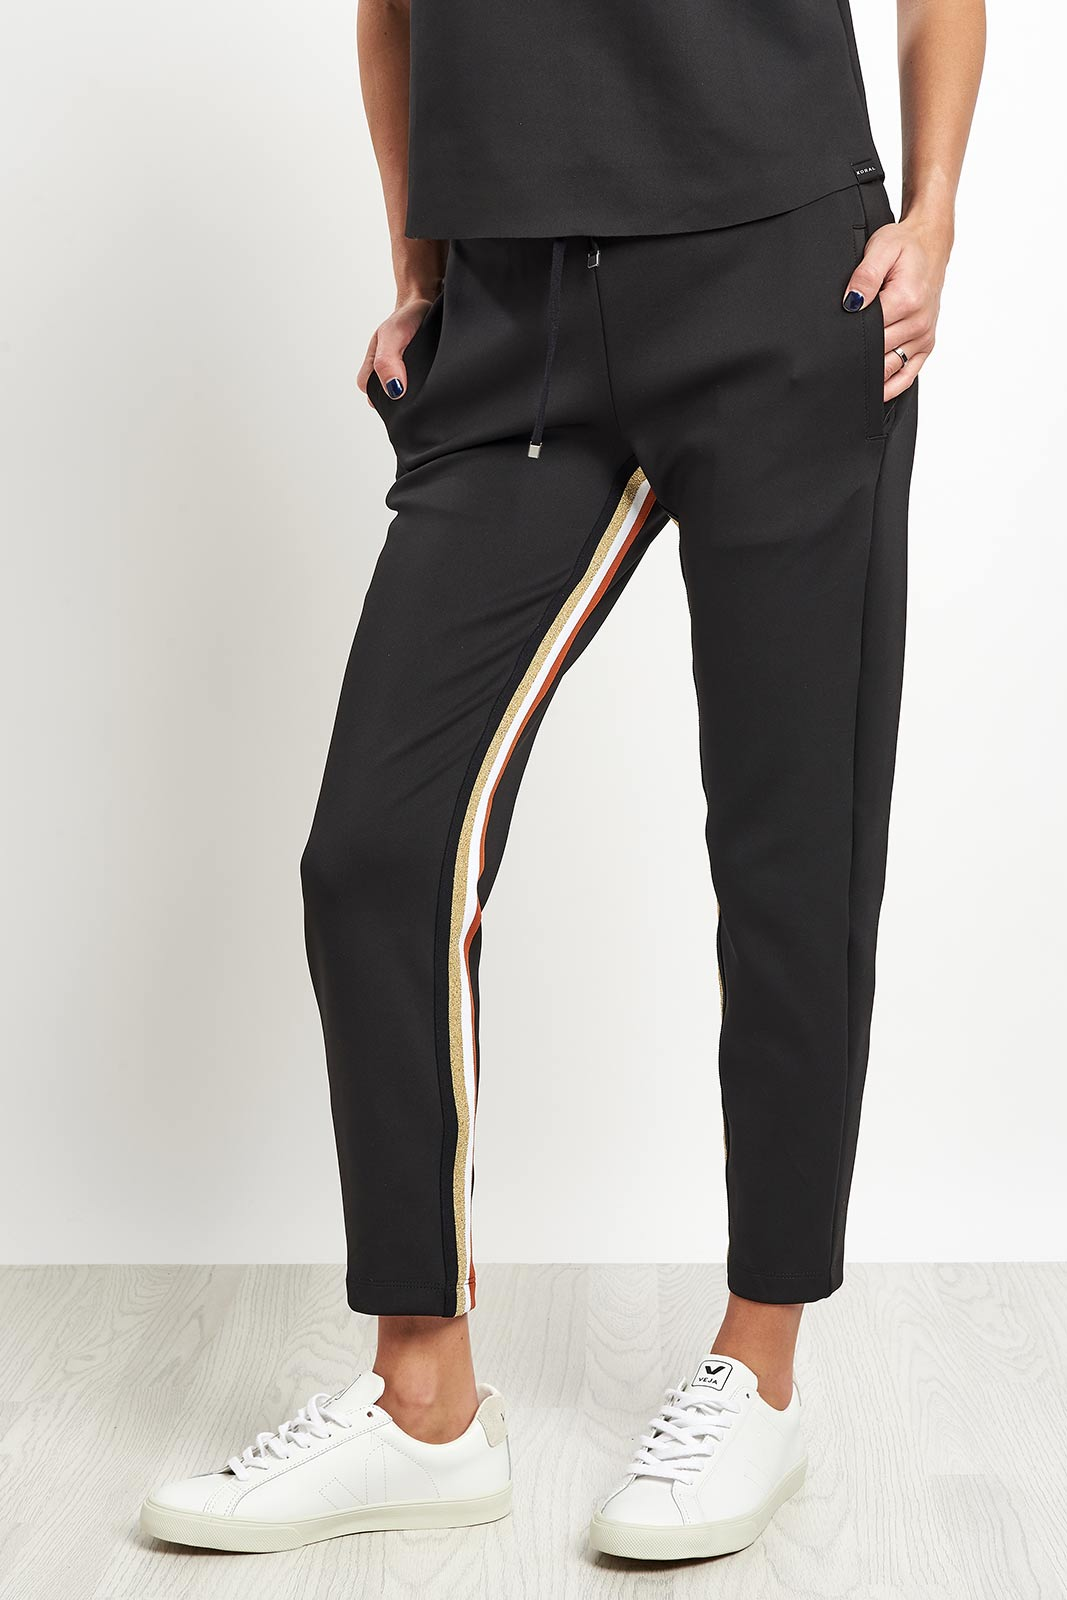 Koral Elizabeth Cropped Pant - Black/Gold image 5 - The Sports Edit